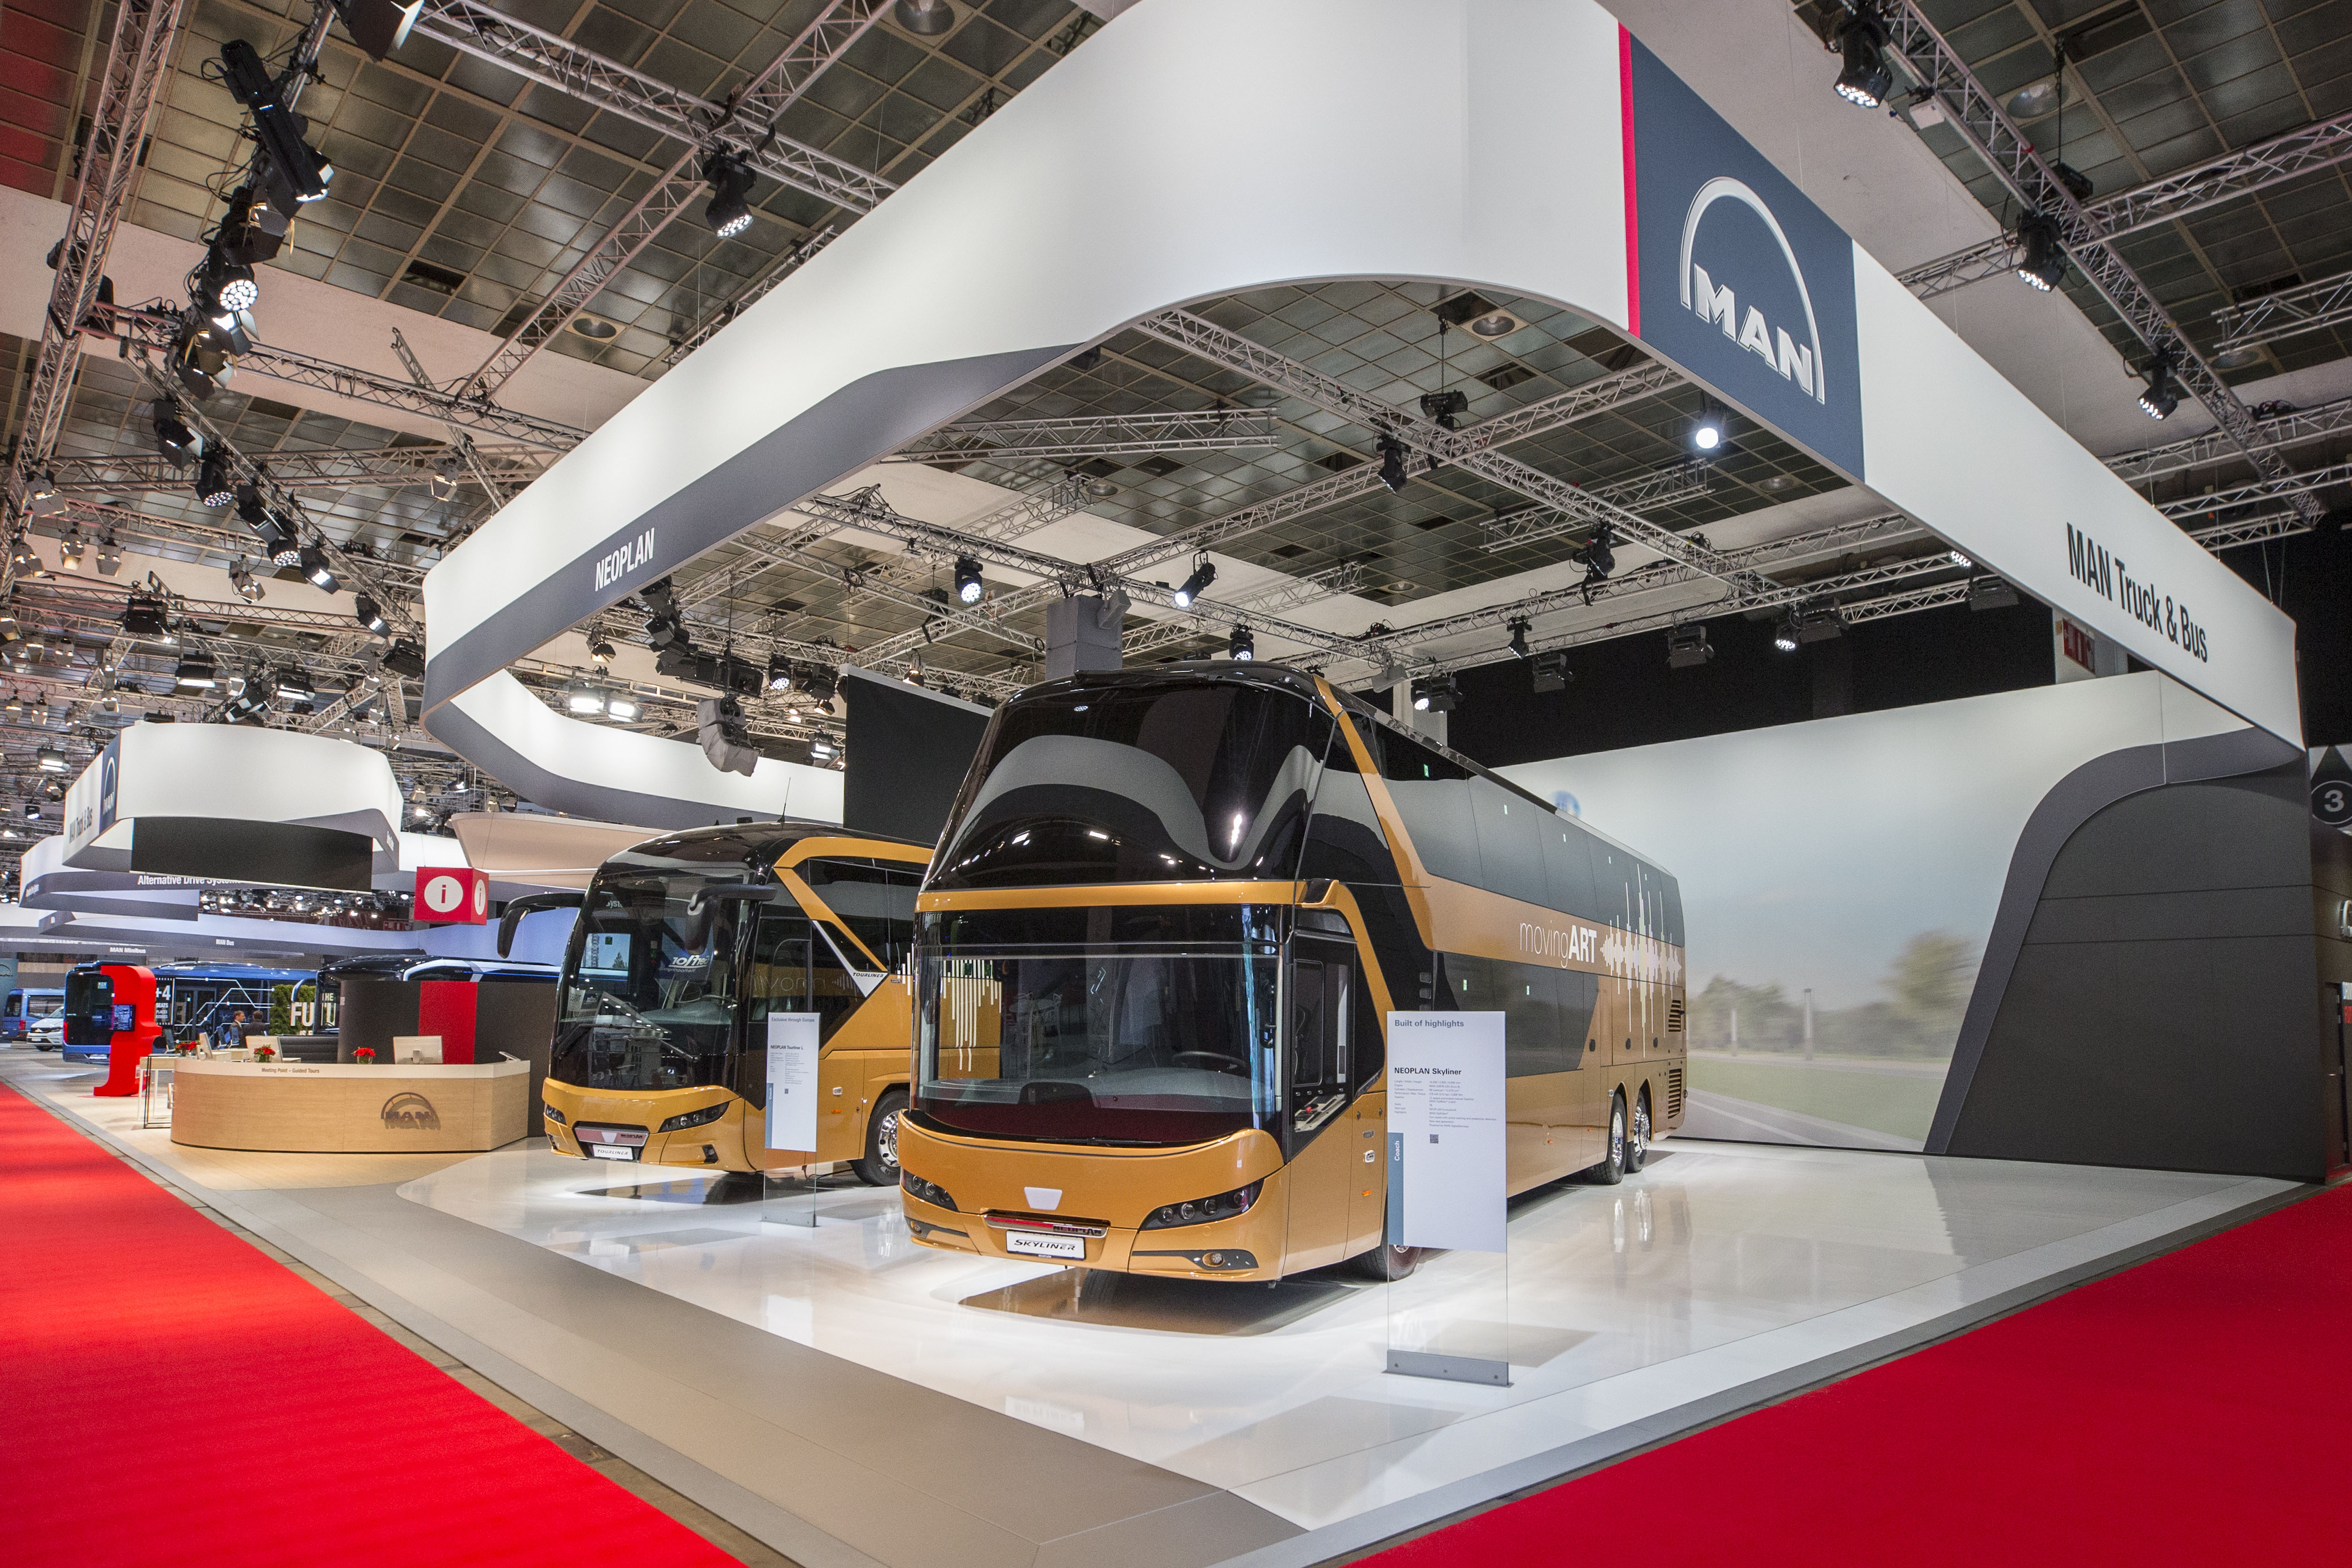 man-busworld-fuar-2019.jpg